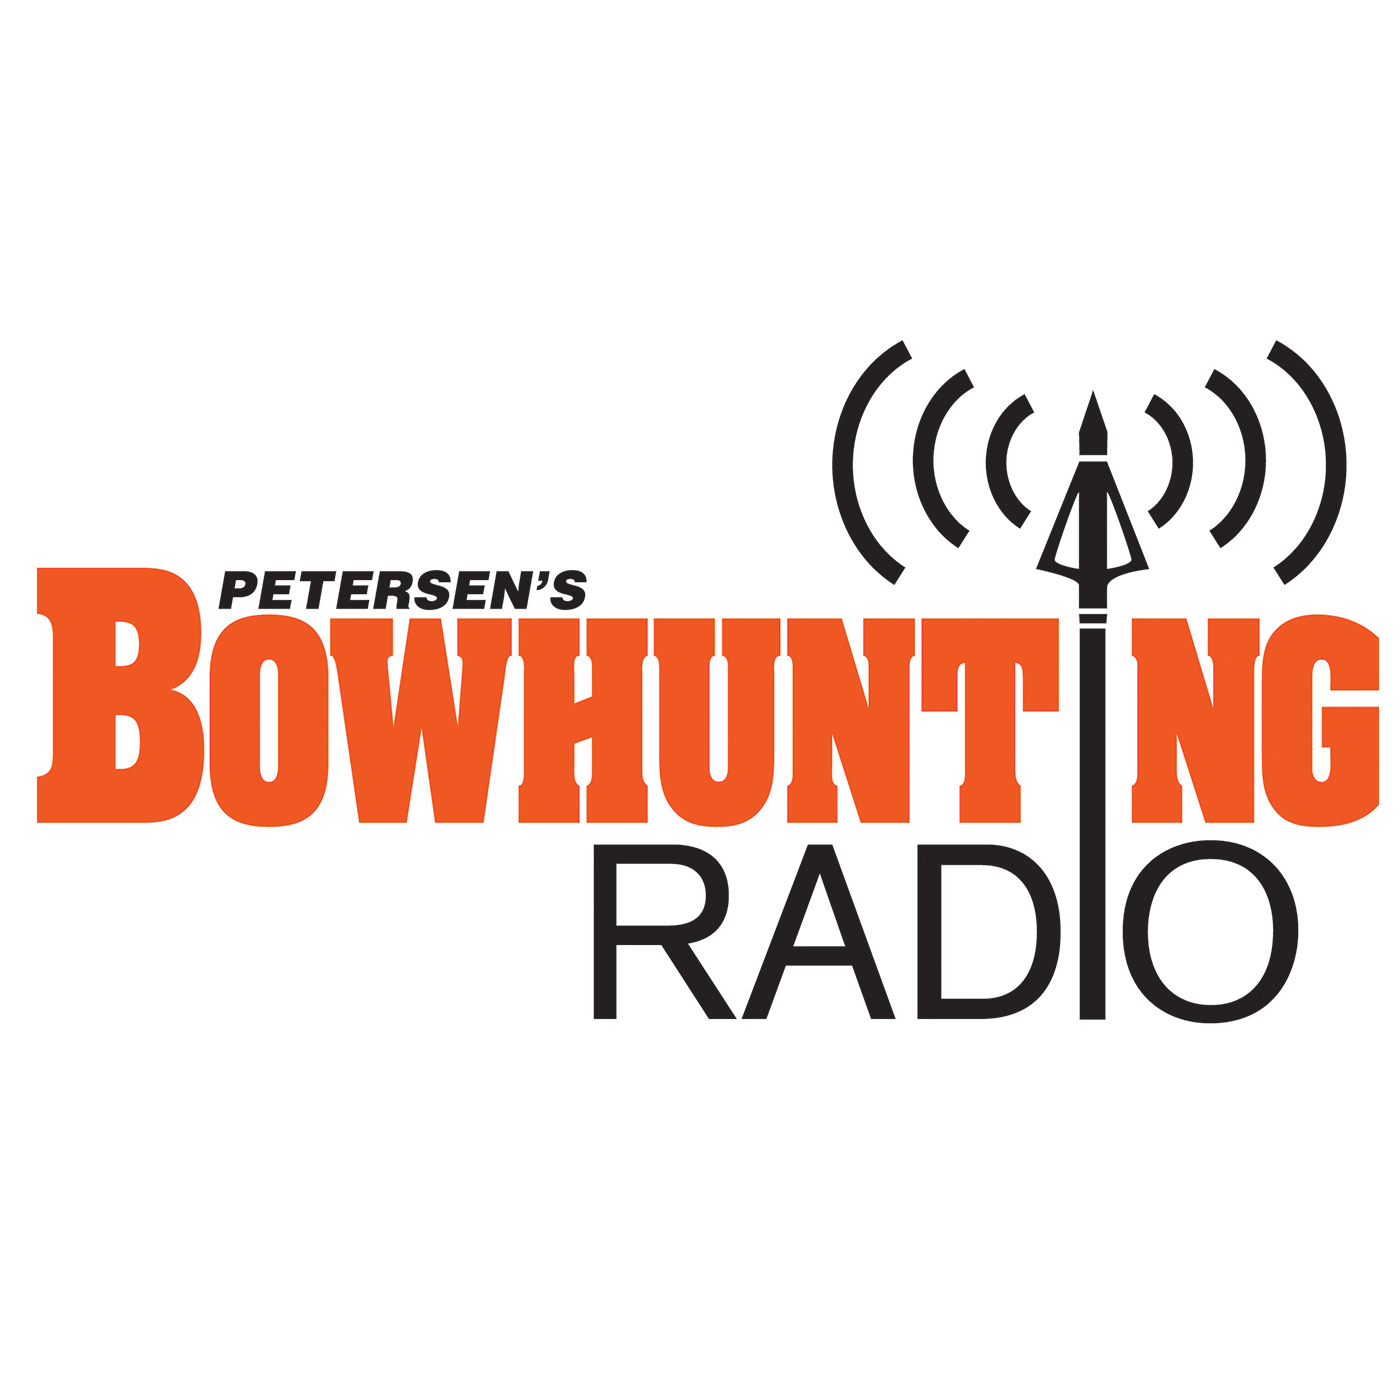 The Bowhunting Media Marketplace